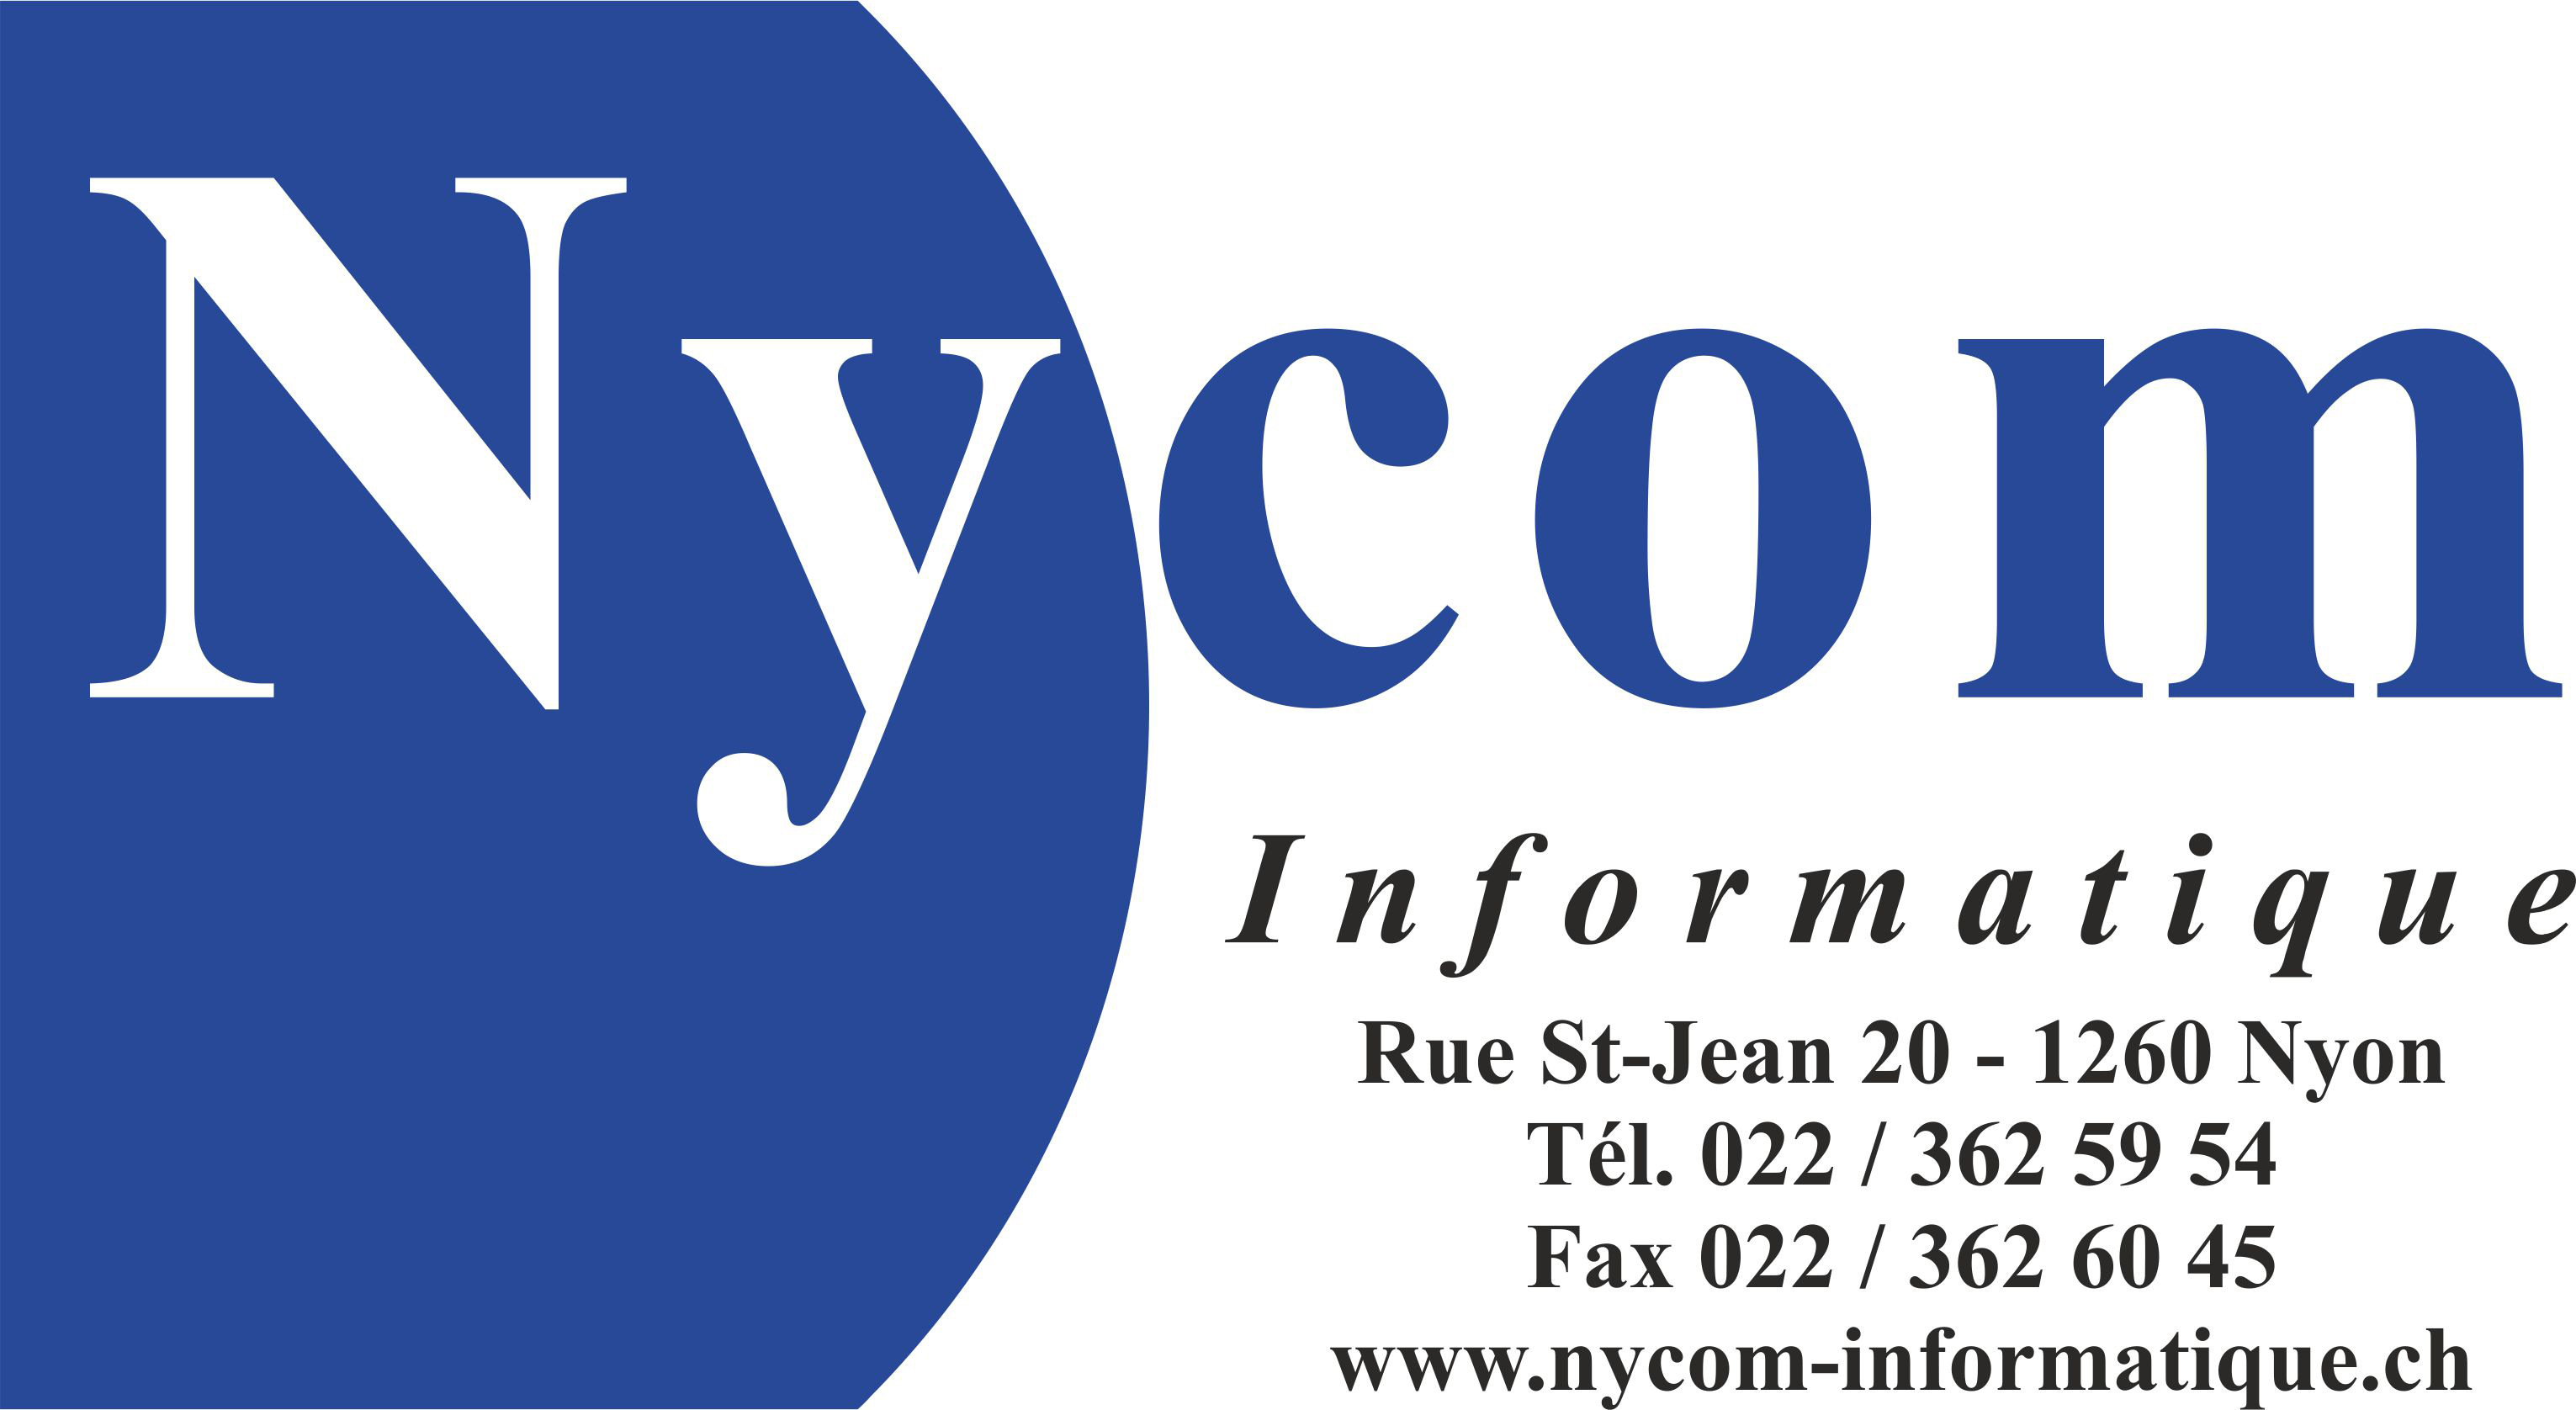 Nycom informatique